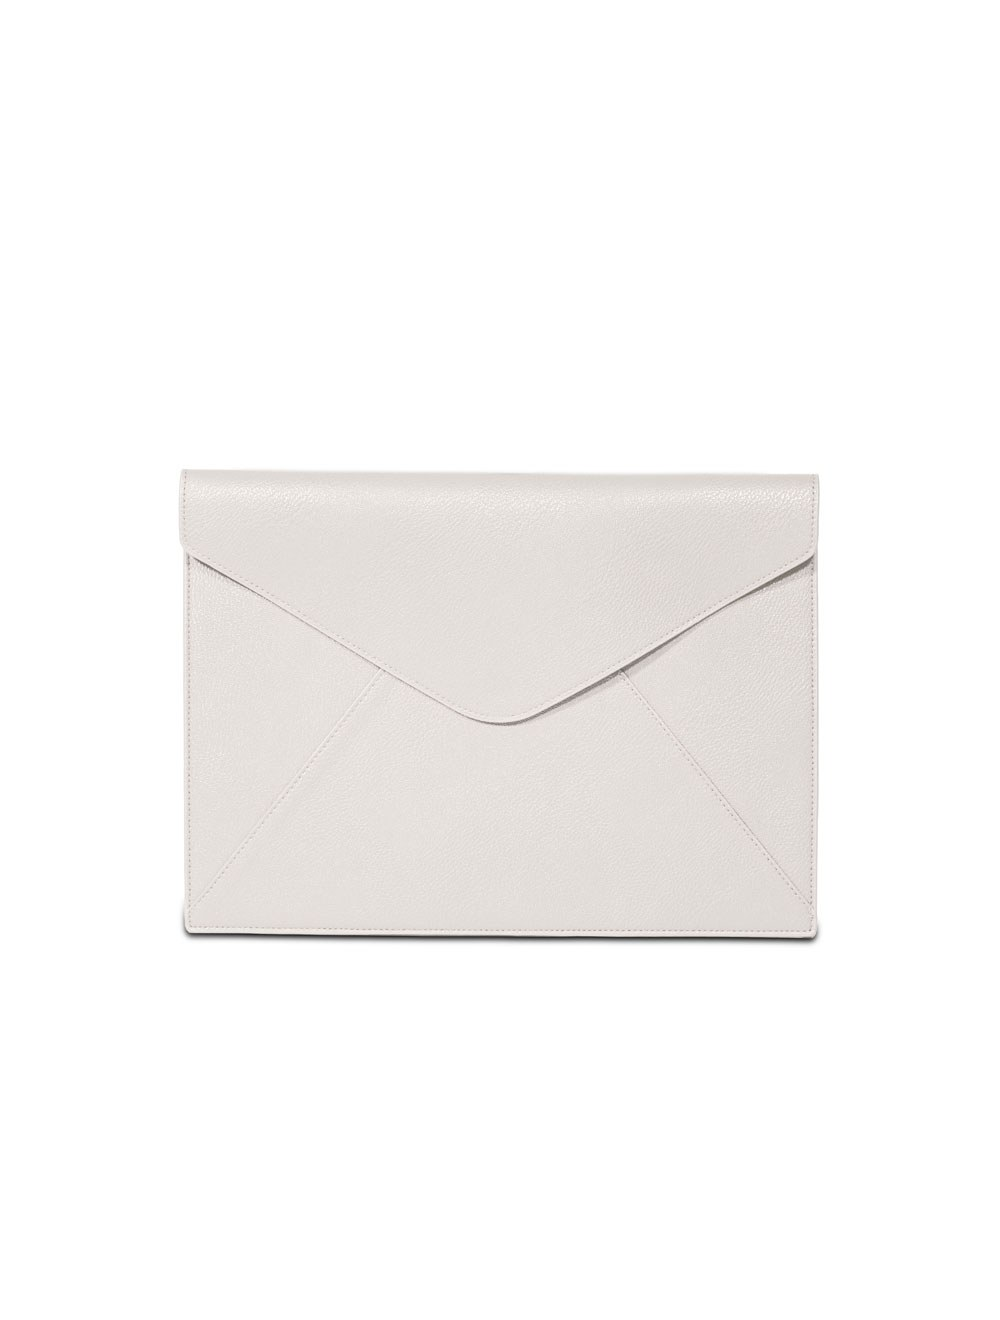 Document Holder Envelope A4 Fedor - Off White